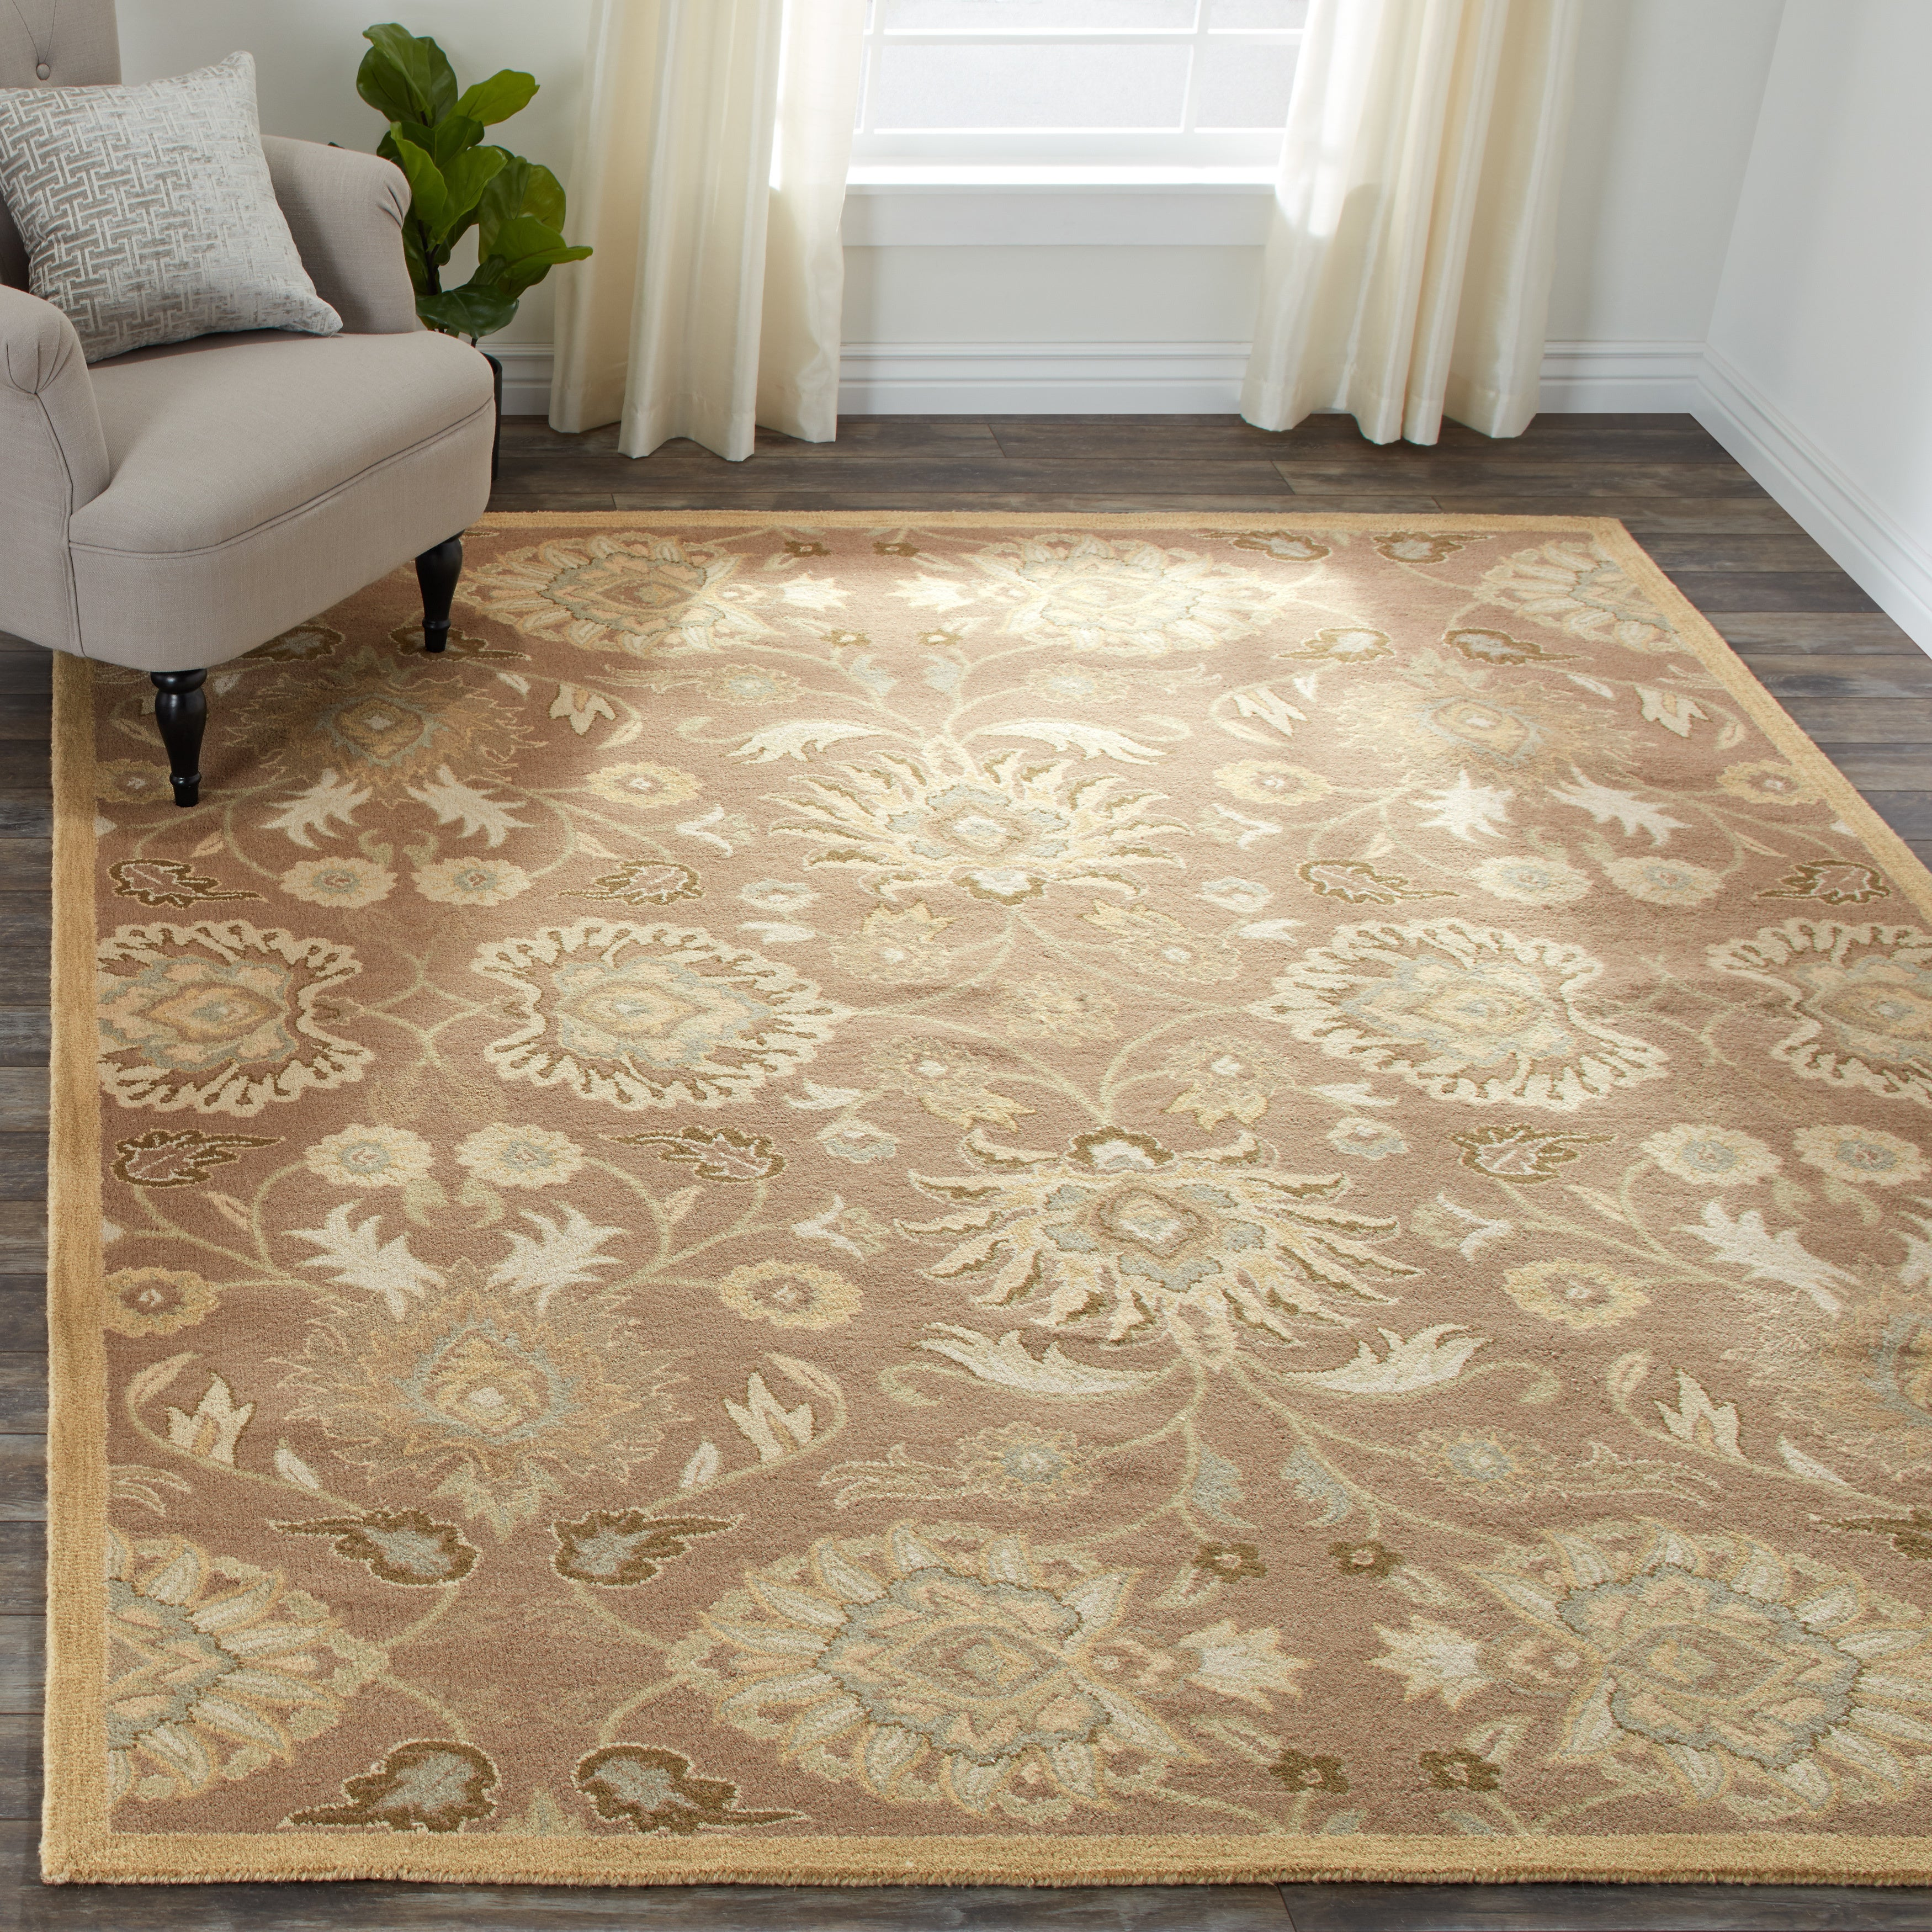 Patchway Handmade Classic Floral Wool Area Rug On Sale Overstock 10633125